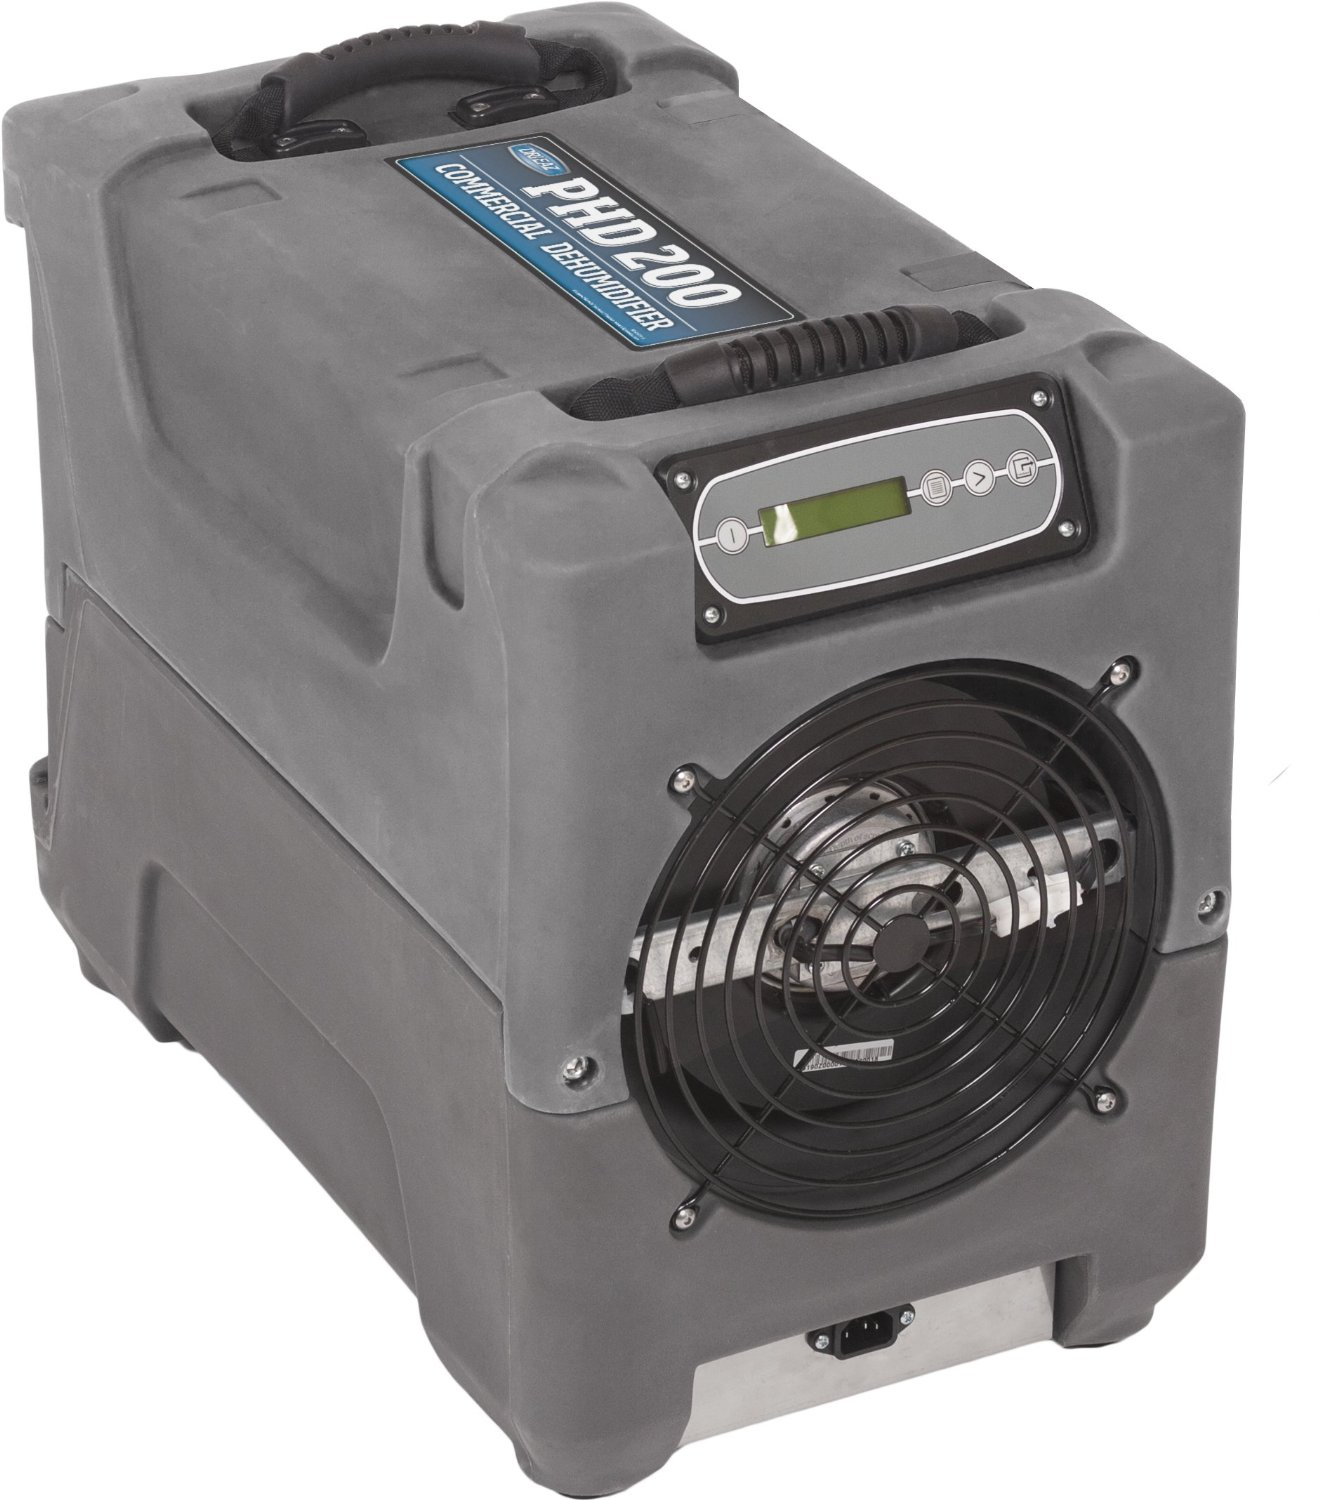 Top 5 Best Crawl Space Dehumidifier and Reviews 2018